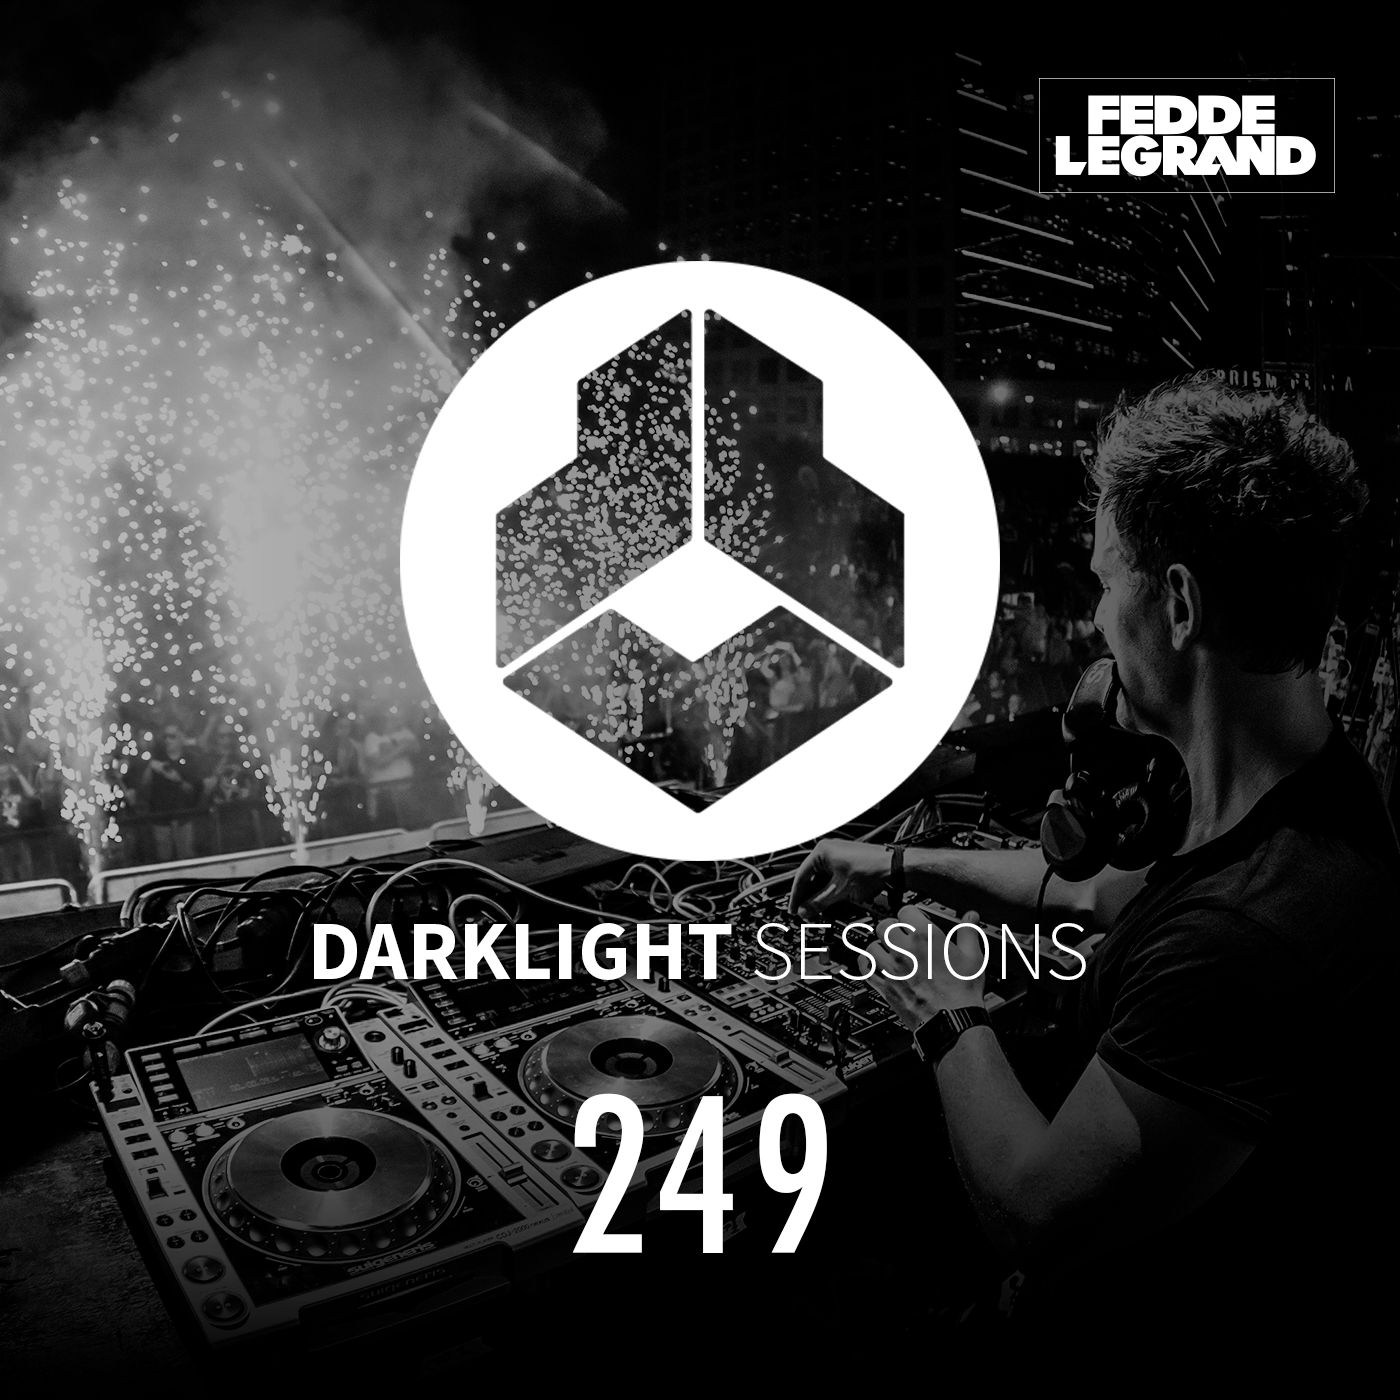 Darklight Sessions 249